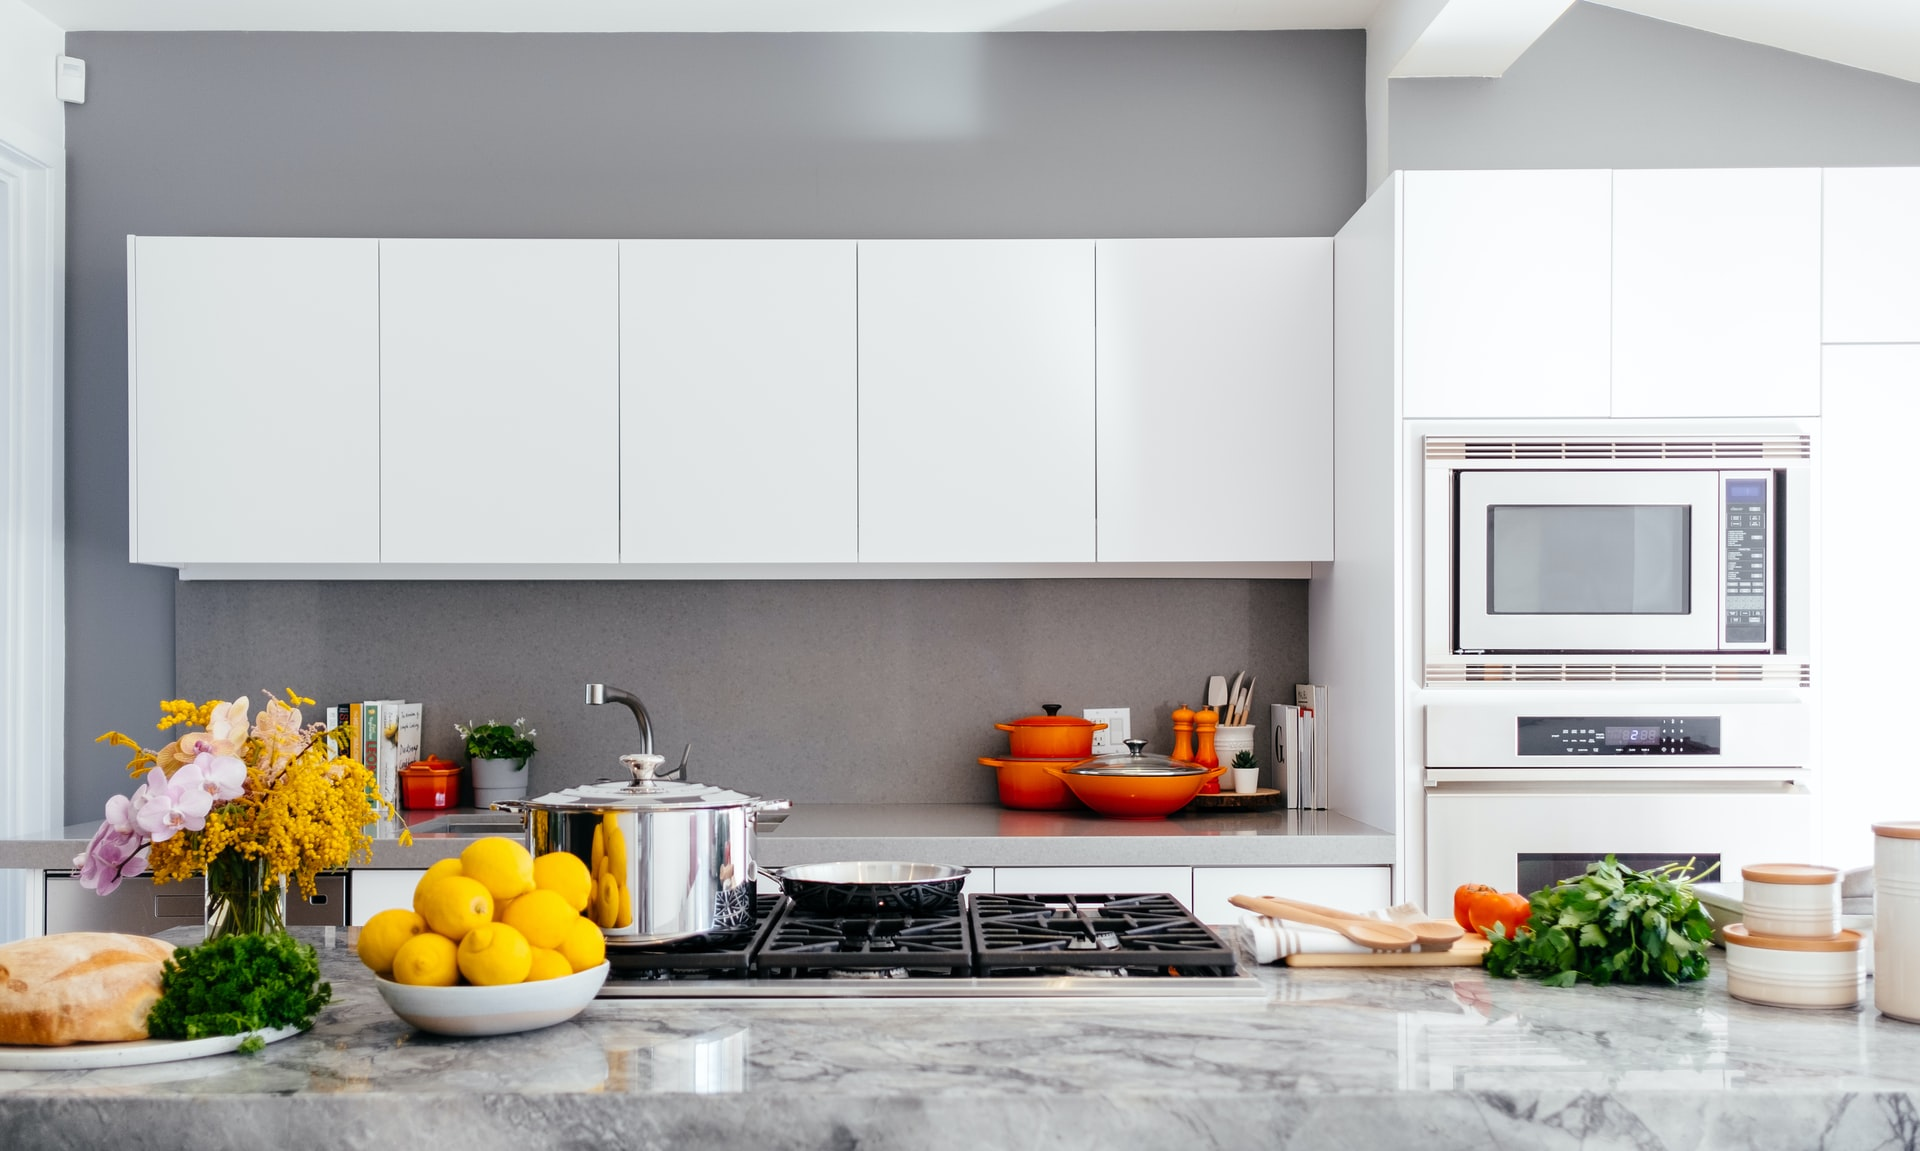 7 Kitchen Appliances Every Good Chef Should Have